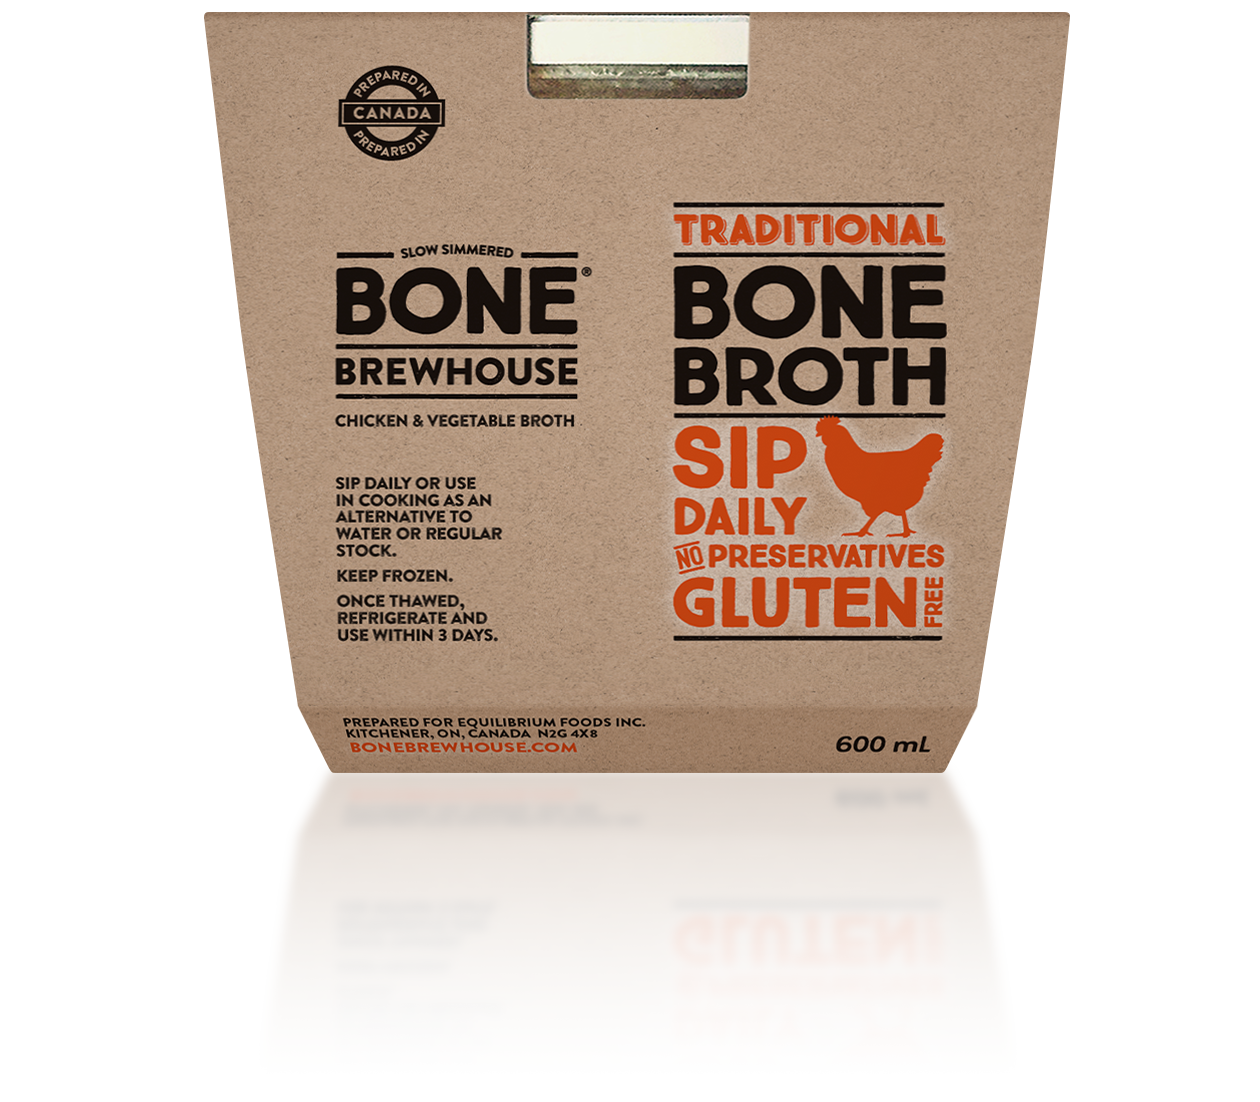 Packaging for traditional chicken bone broth made by Bone Brewhouse.